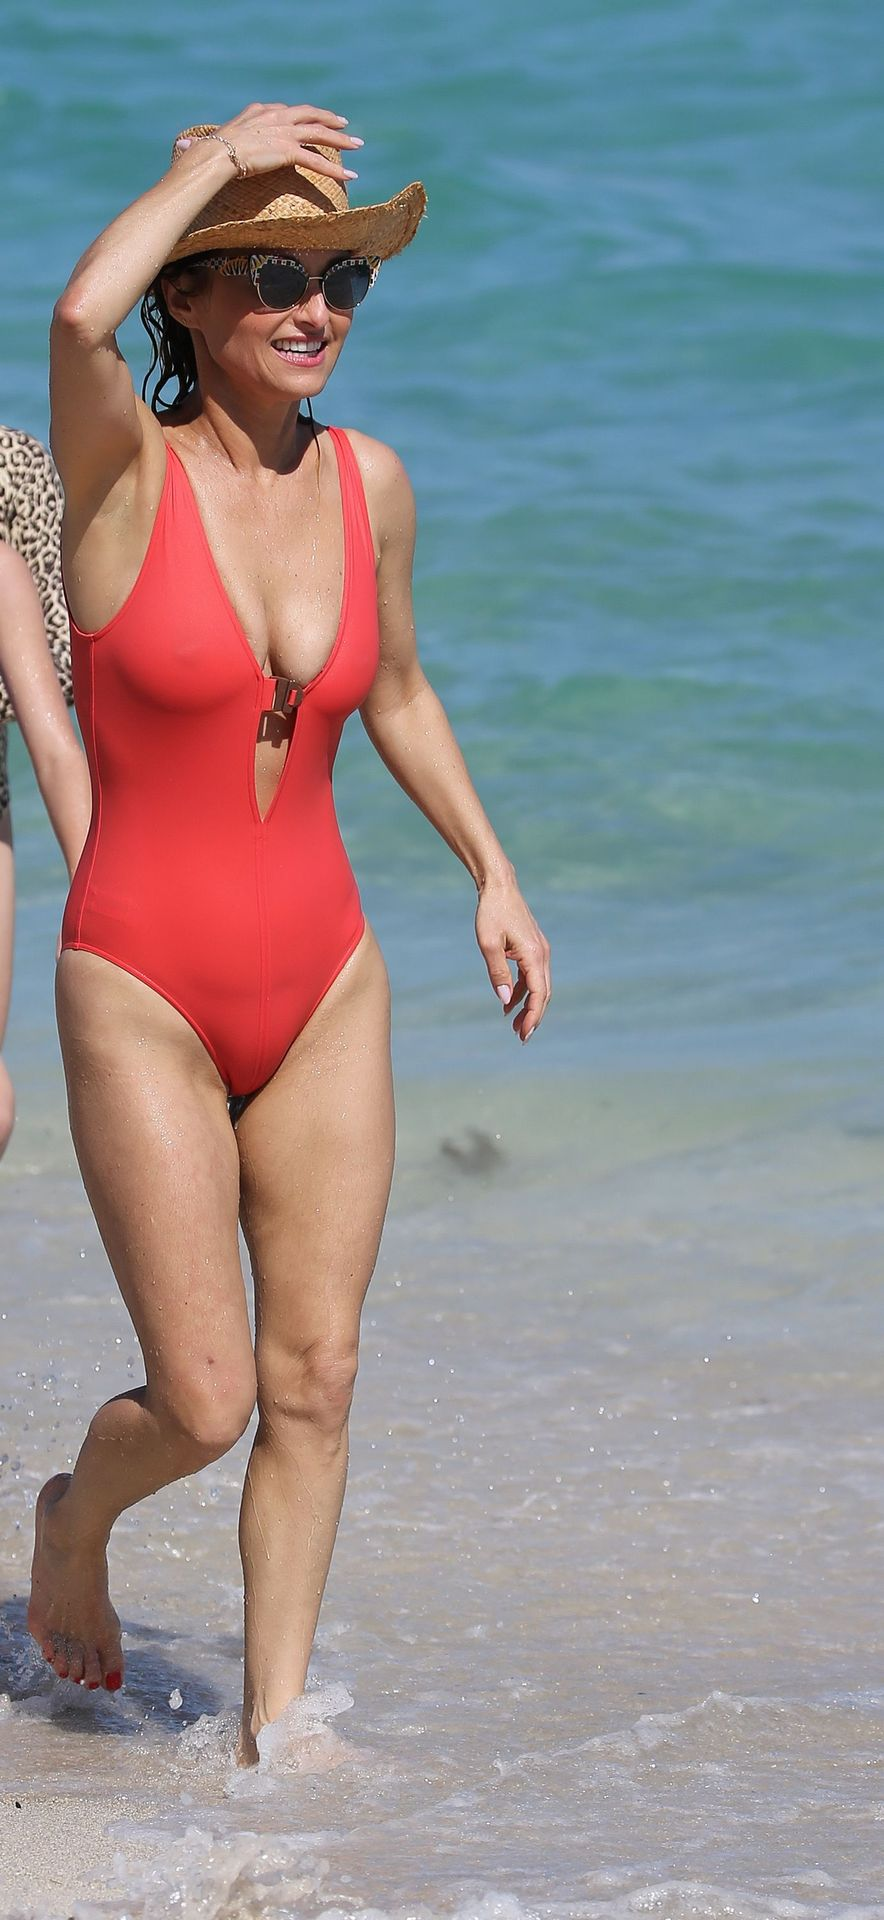 Giada De Laurentiis Show Off Her Curves in a Sexy Pink Swimsuit on the Beach in Miami (52 Photos)